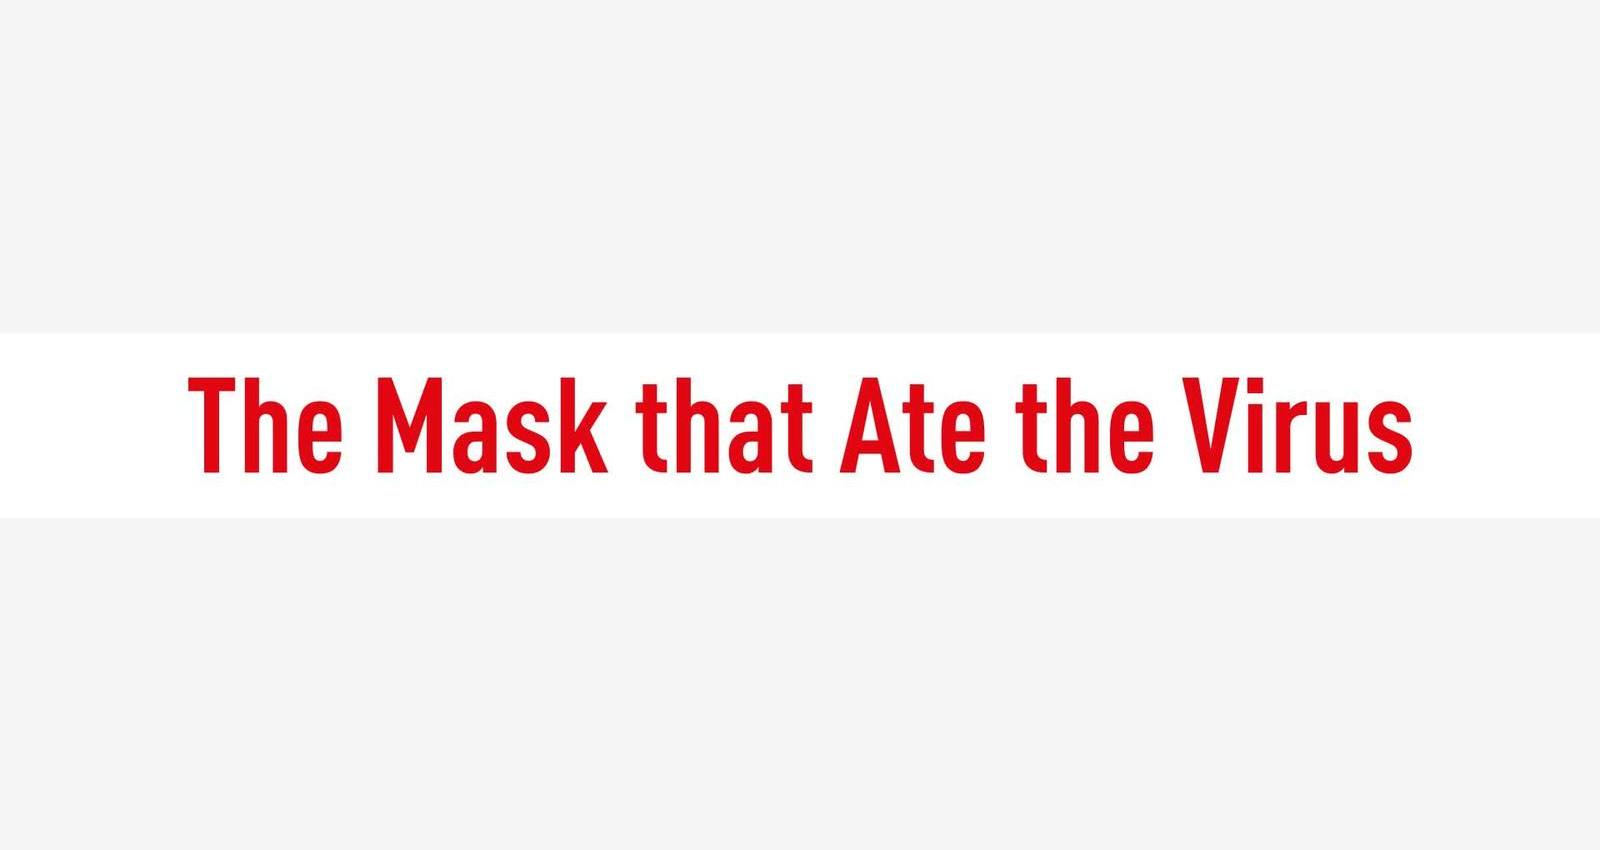 The Masks that Ate the Virus